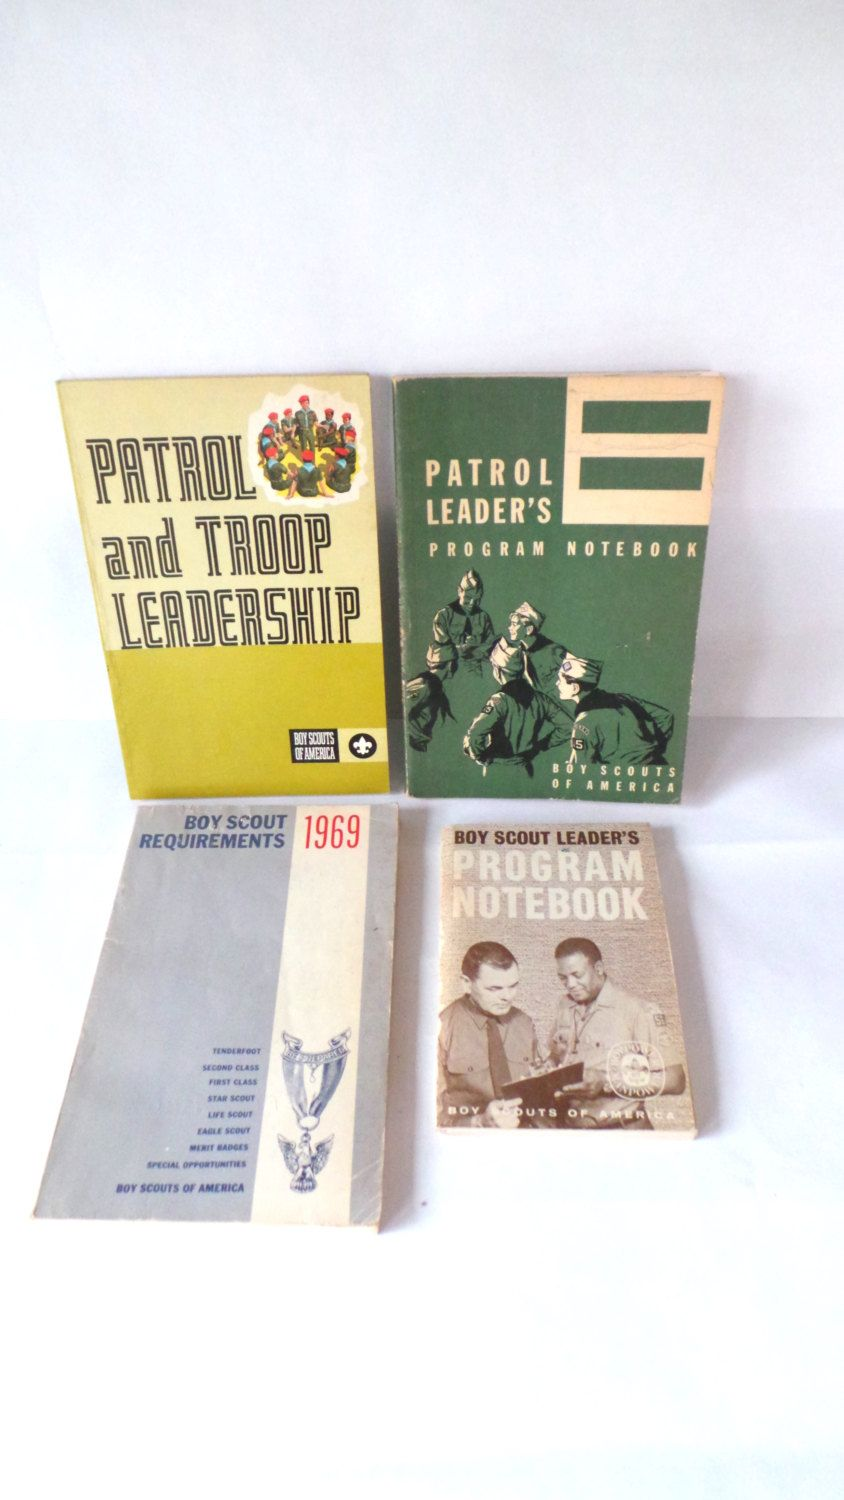 BSA Boy Scouts Books, Boy Scouts Vintage Books, Lot of Boy Scout Books - 1950s - 1970s by ClassicCamping on Etsy